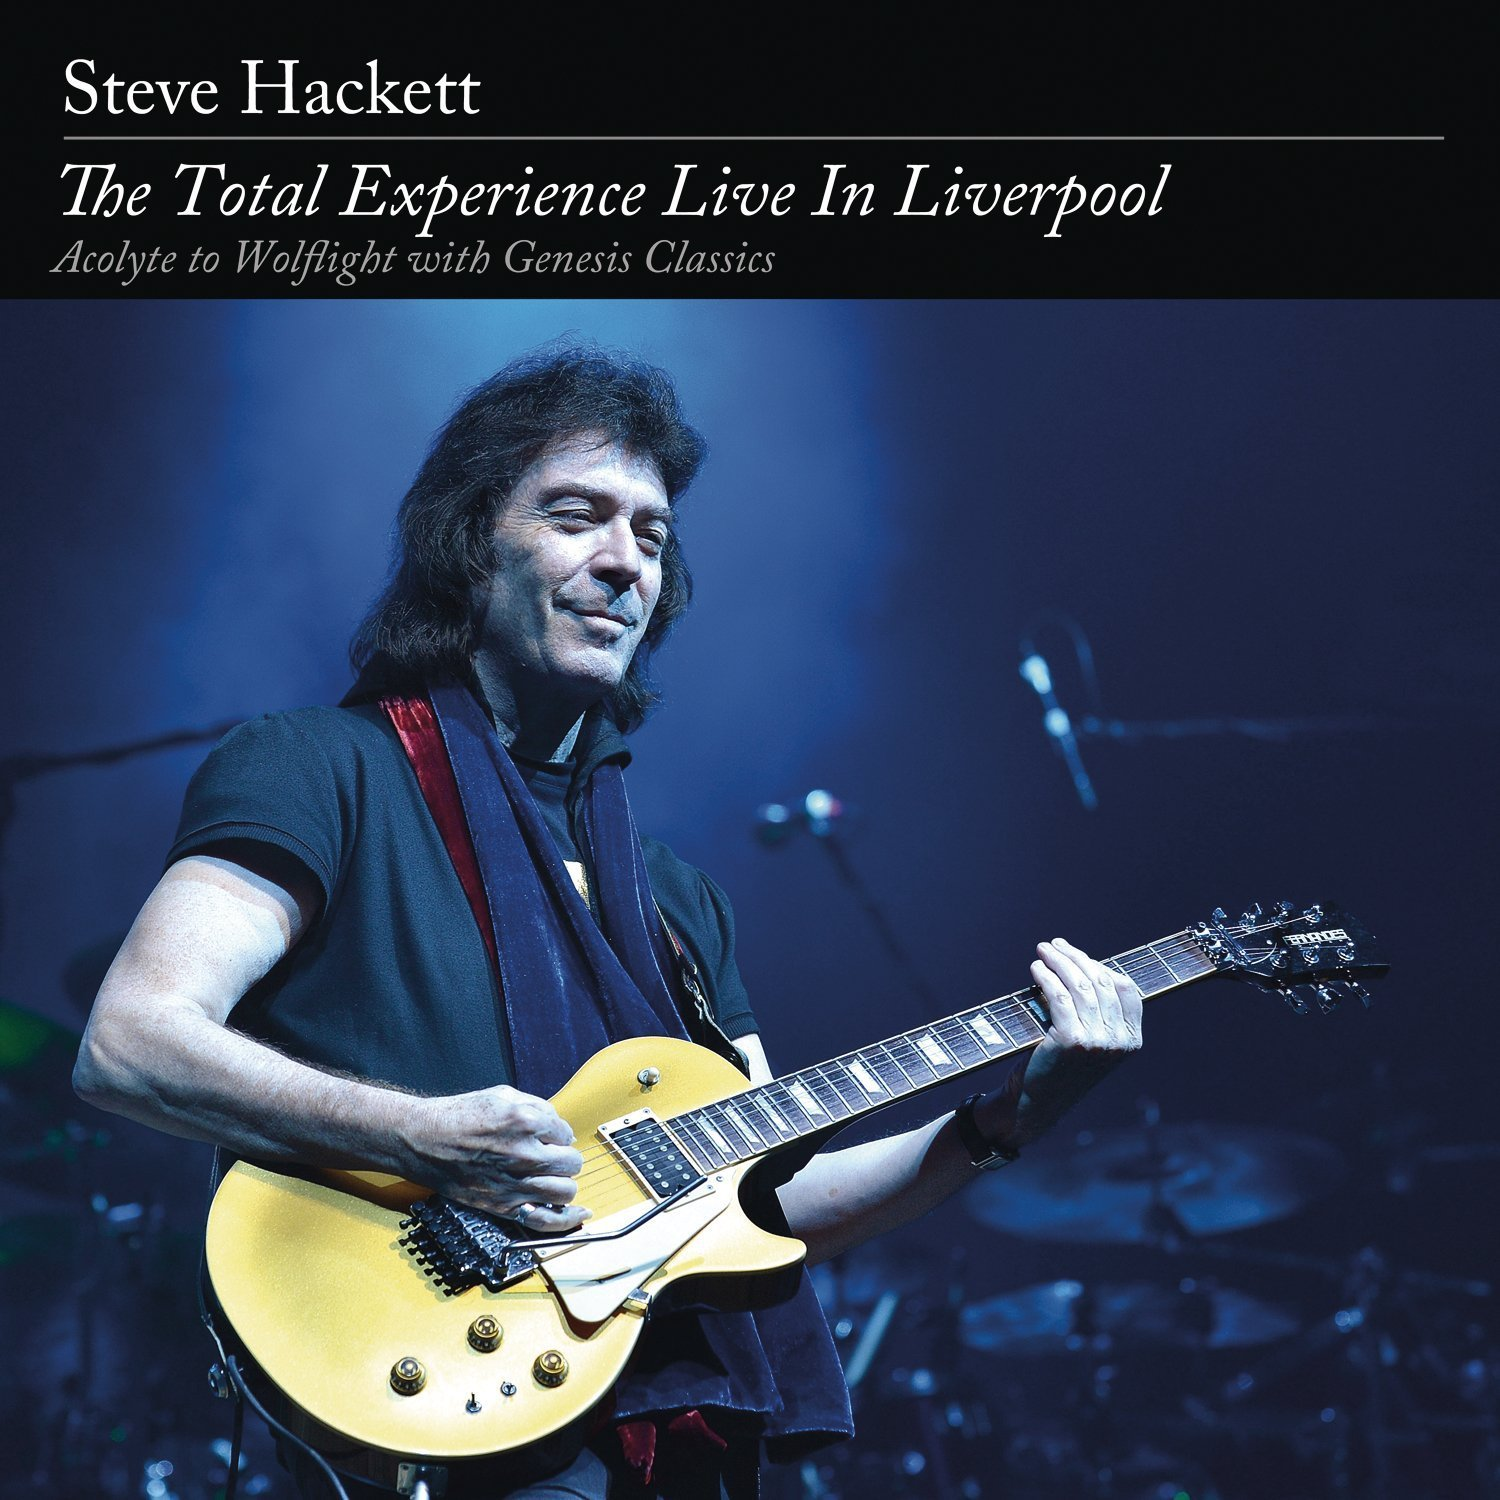 Steve Hackett - The Total Experience Live In Liverpool [2CD/2DVD]